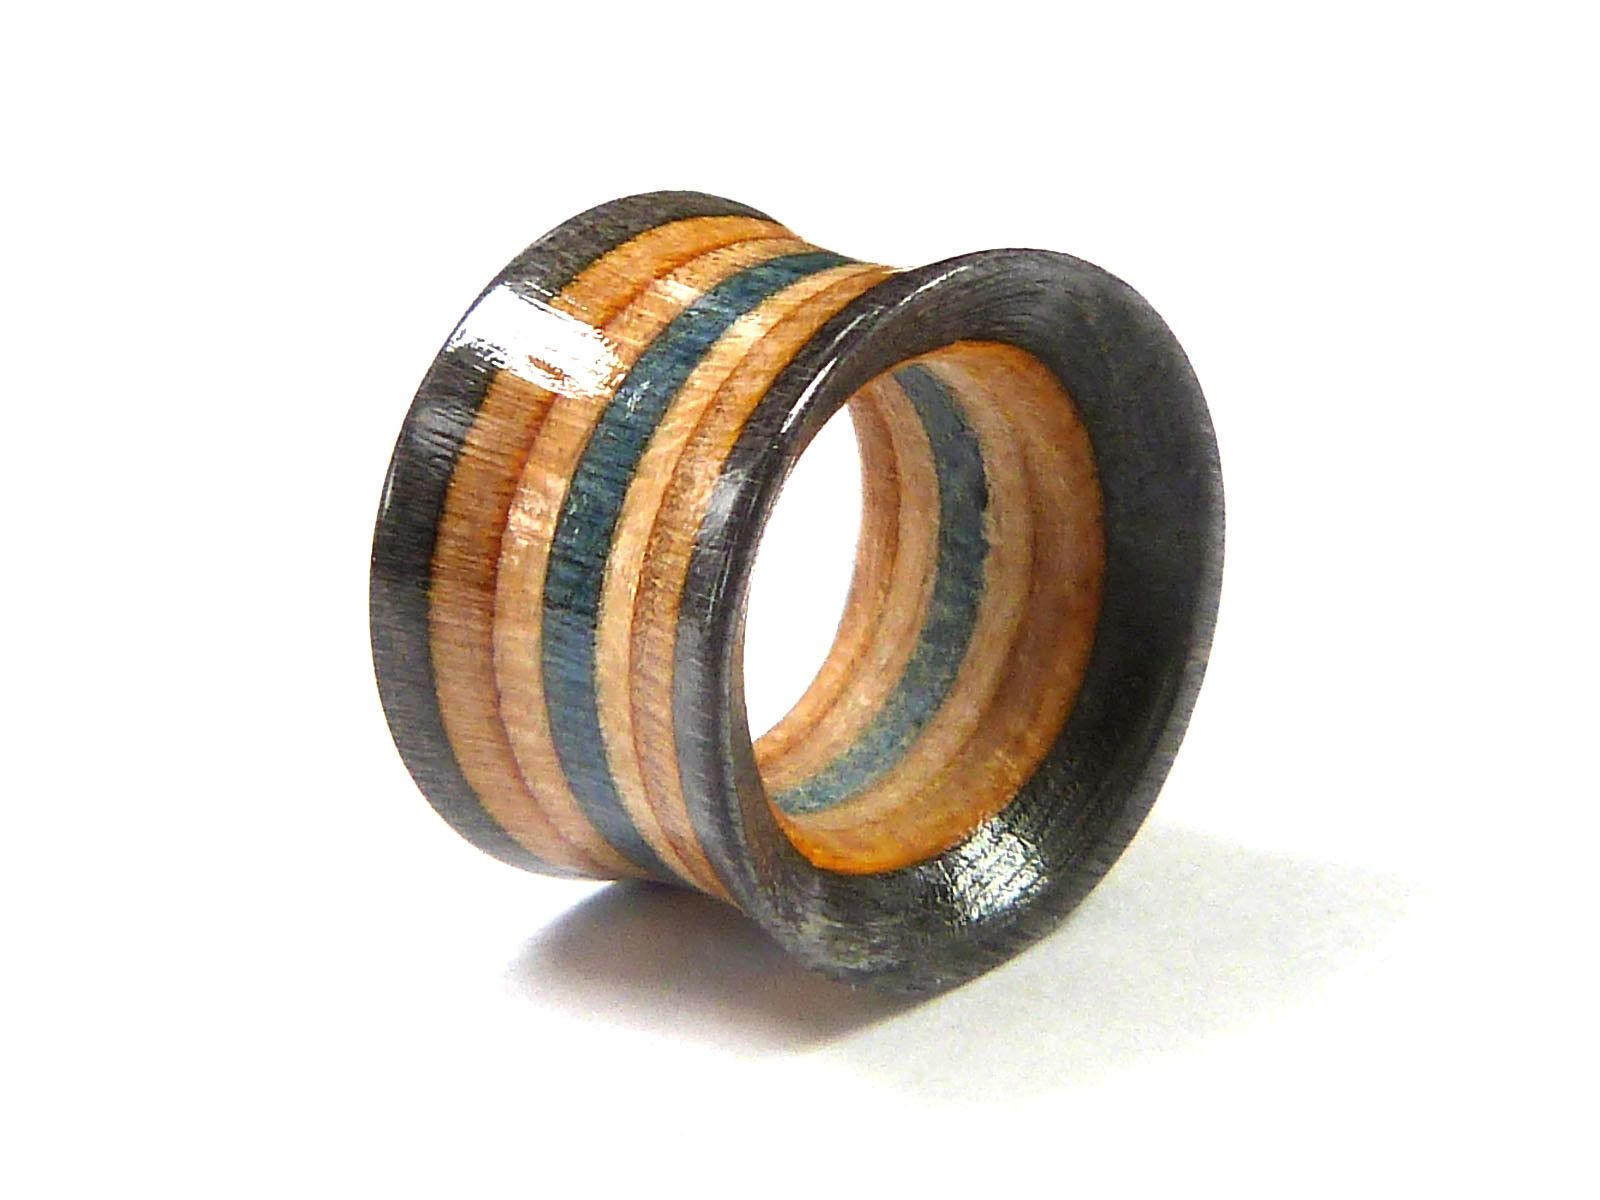 Gauges Ear Gauge Pair Of Tunnels Recycled Skateboards Plugs and Tunnels Ear Plugs Wooden Plugs Wooden Plug Wood Tunnel Wood Tunnels